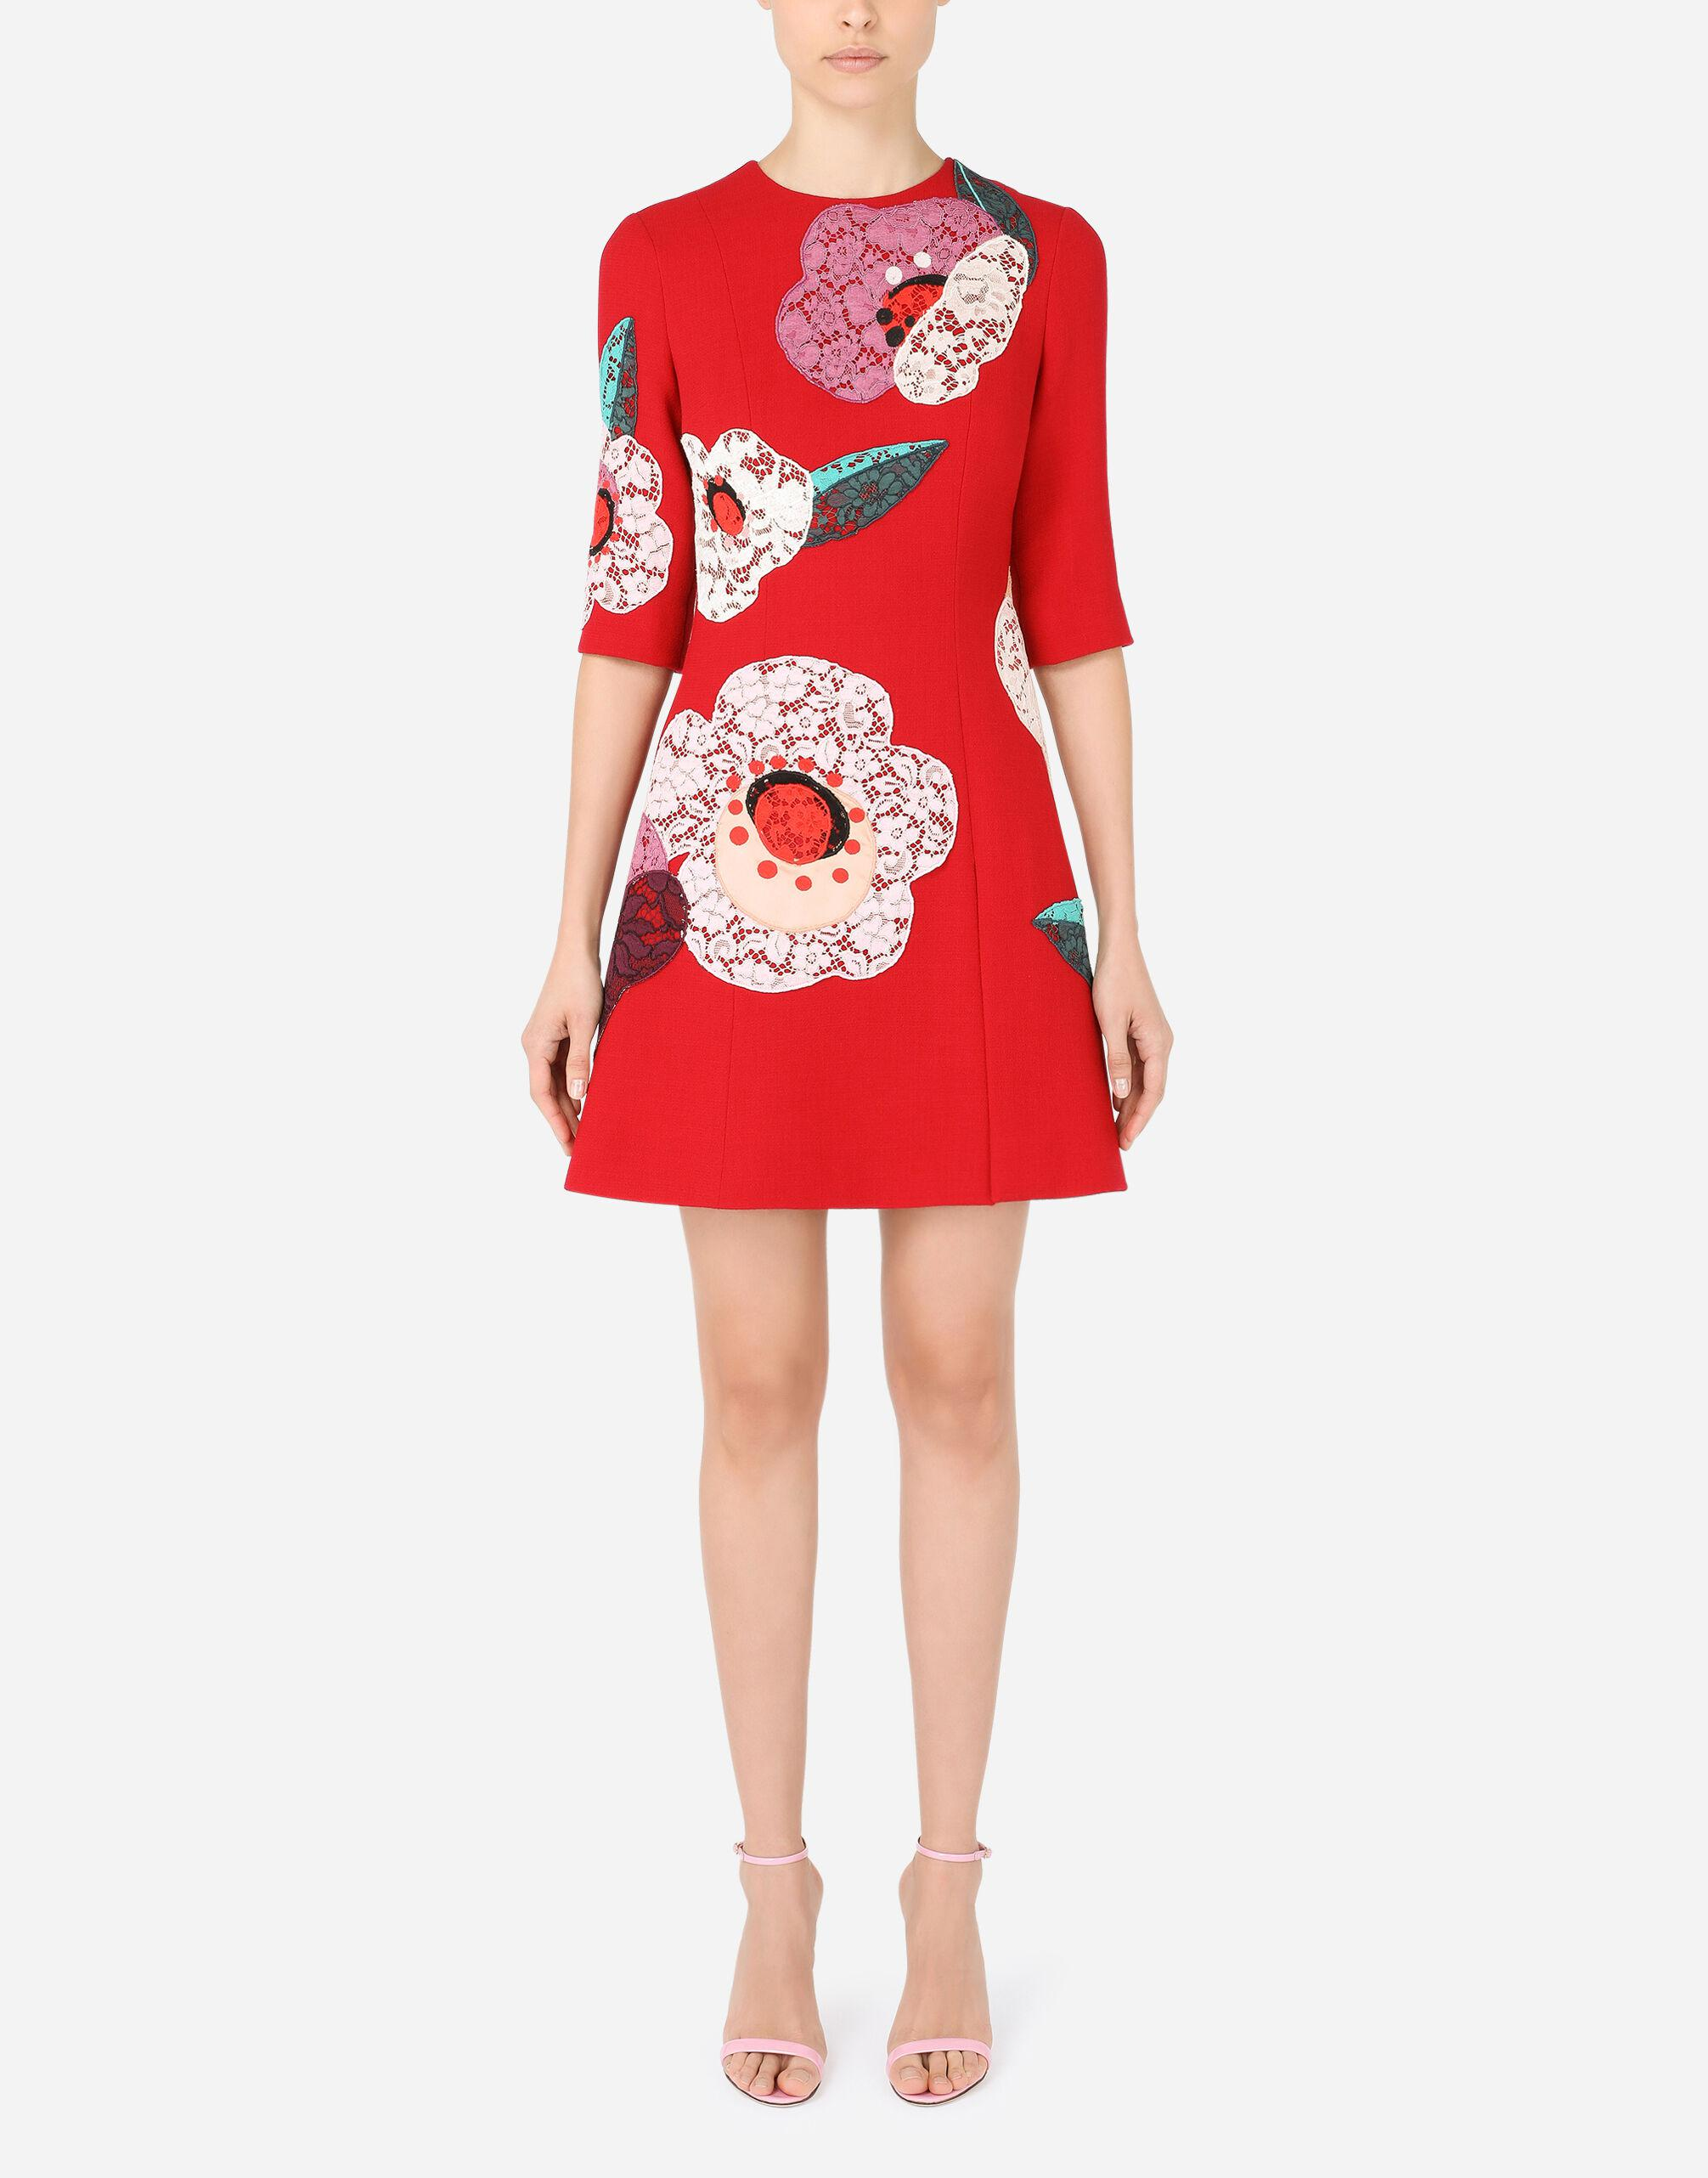 Short crepe dress with floral patches